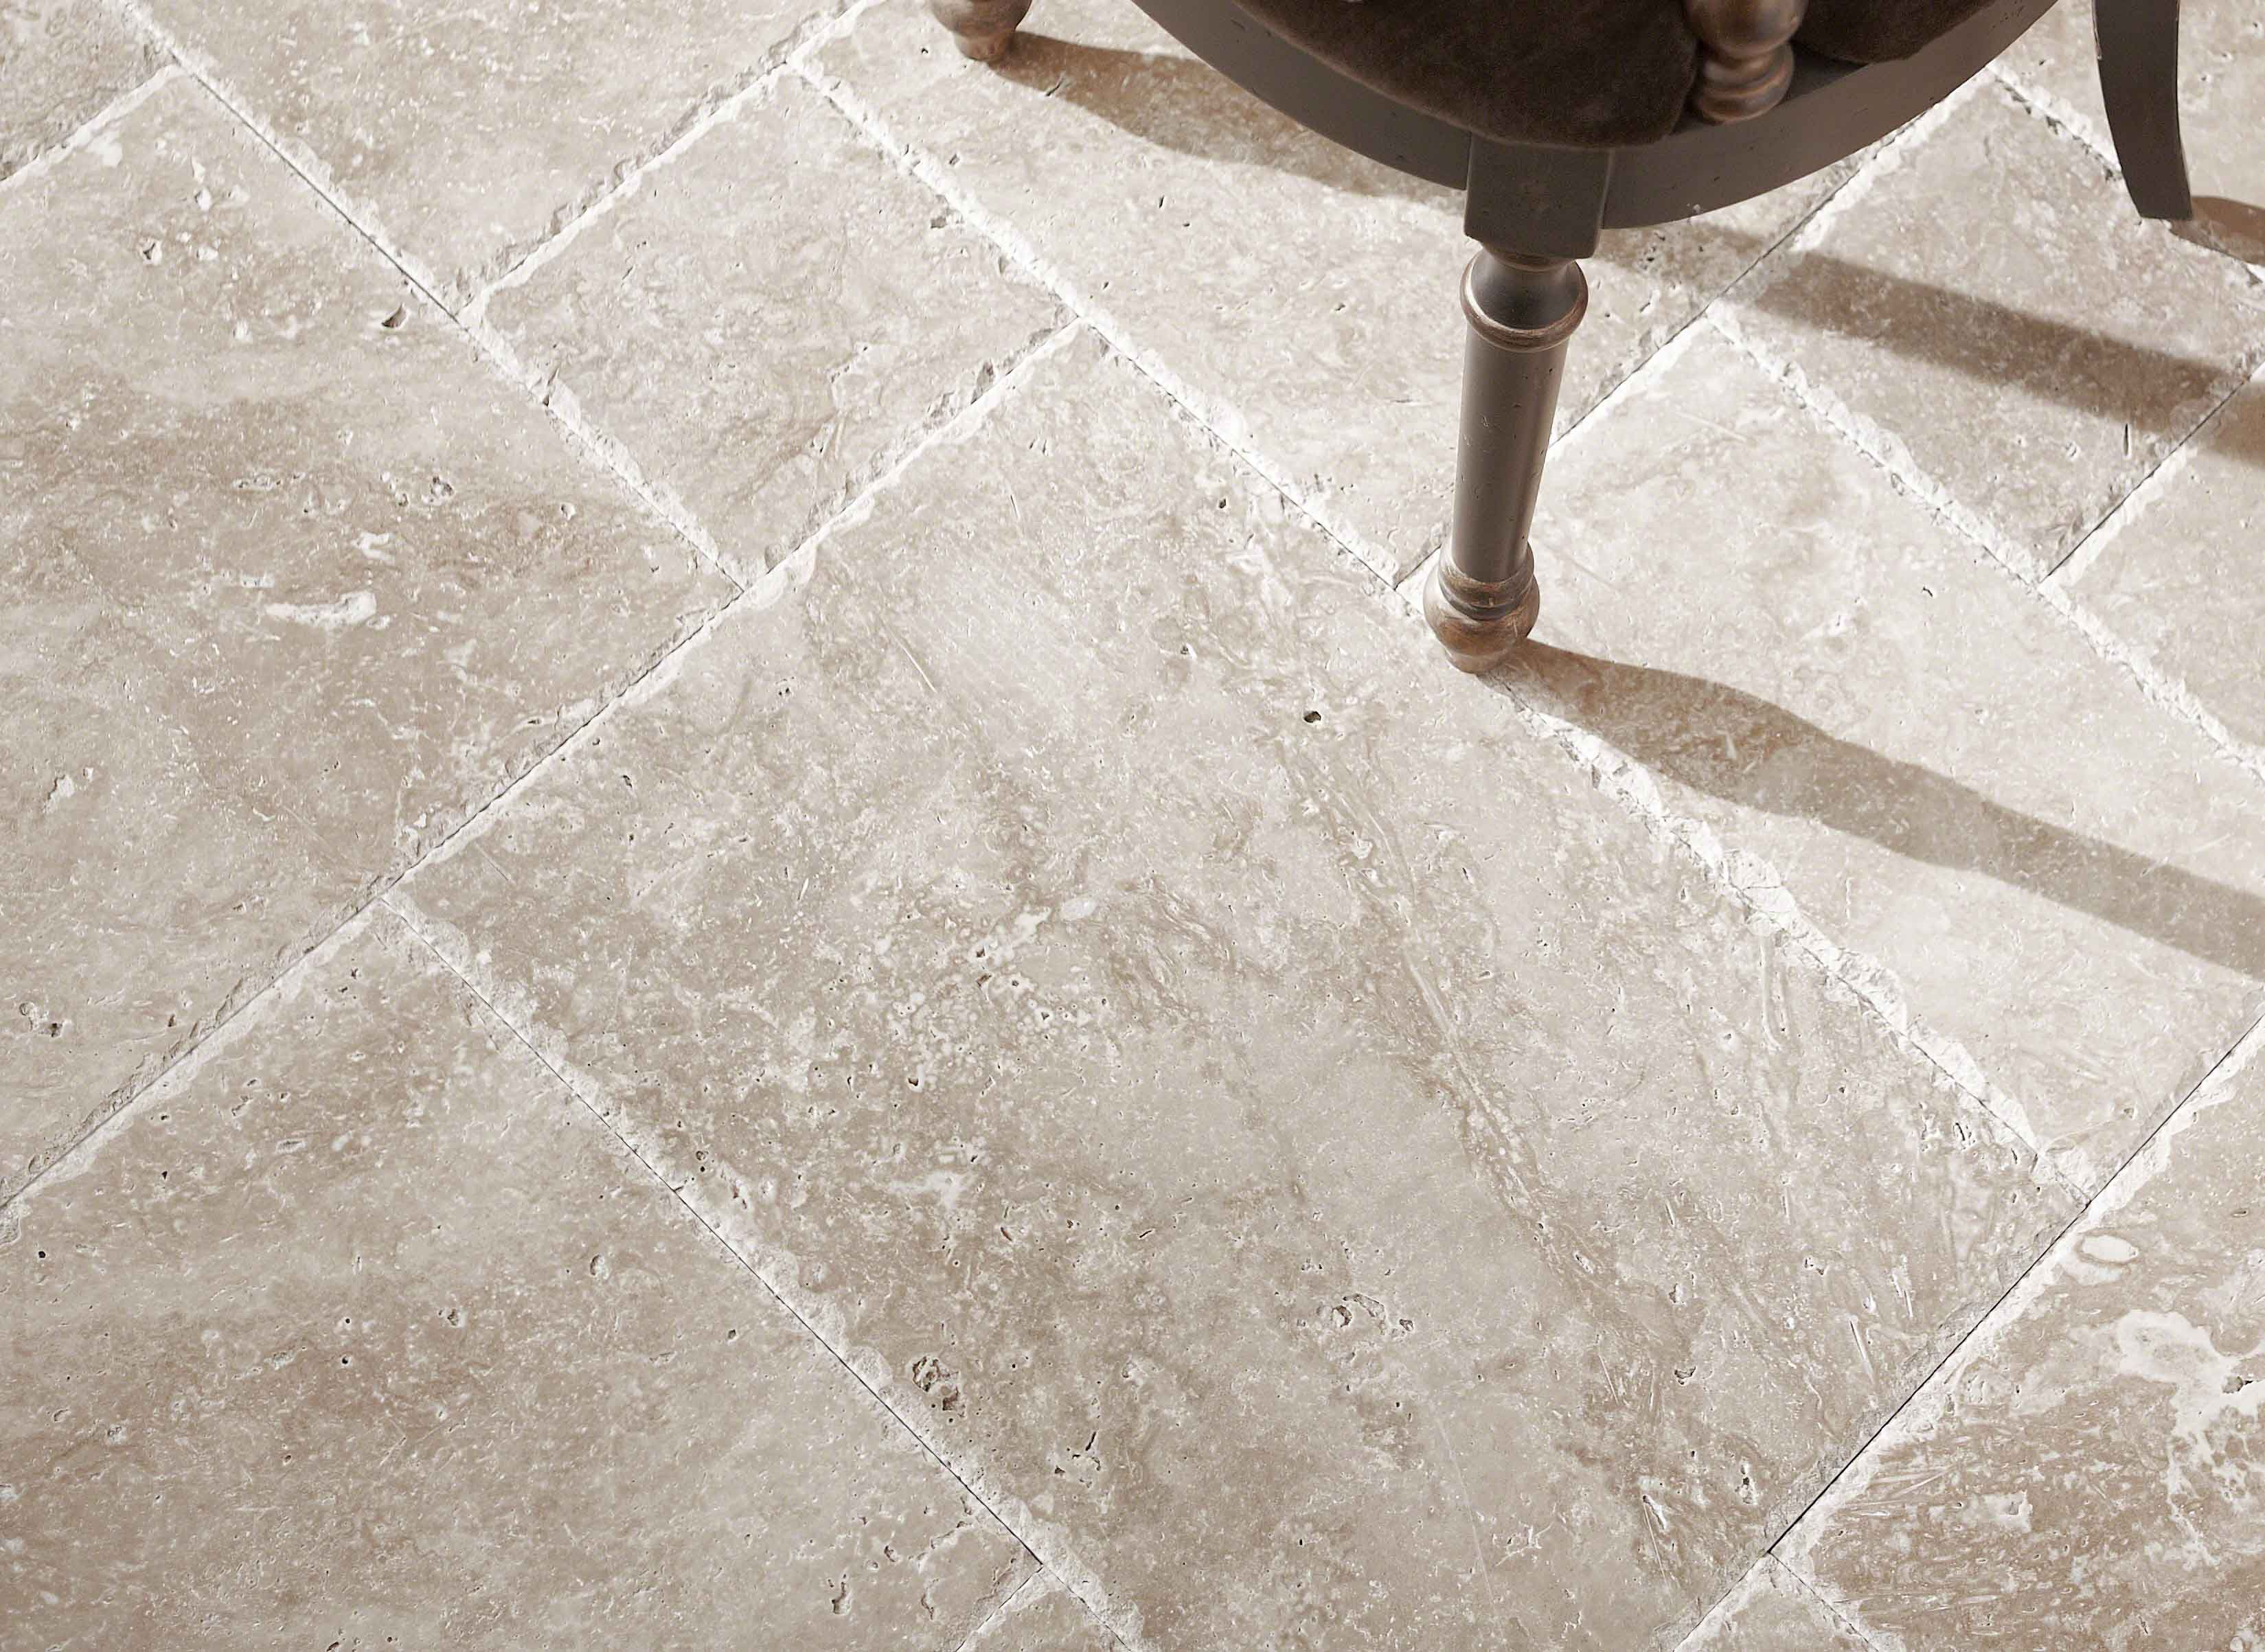 M s international blog education and information on natural home decorating style 2016 for new rectified porcelain tile that looks like travertine you can see new rectified porcelain tile that looks like travertine dailygadgetfo Choice Image